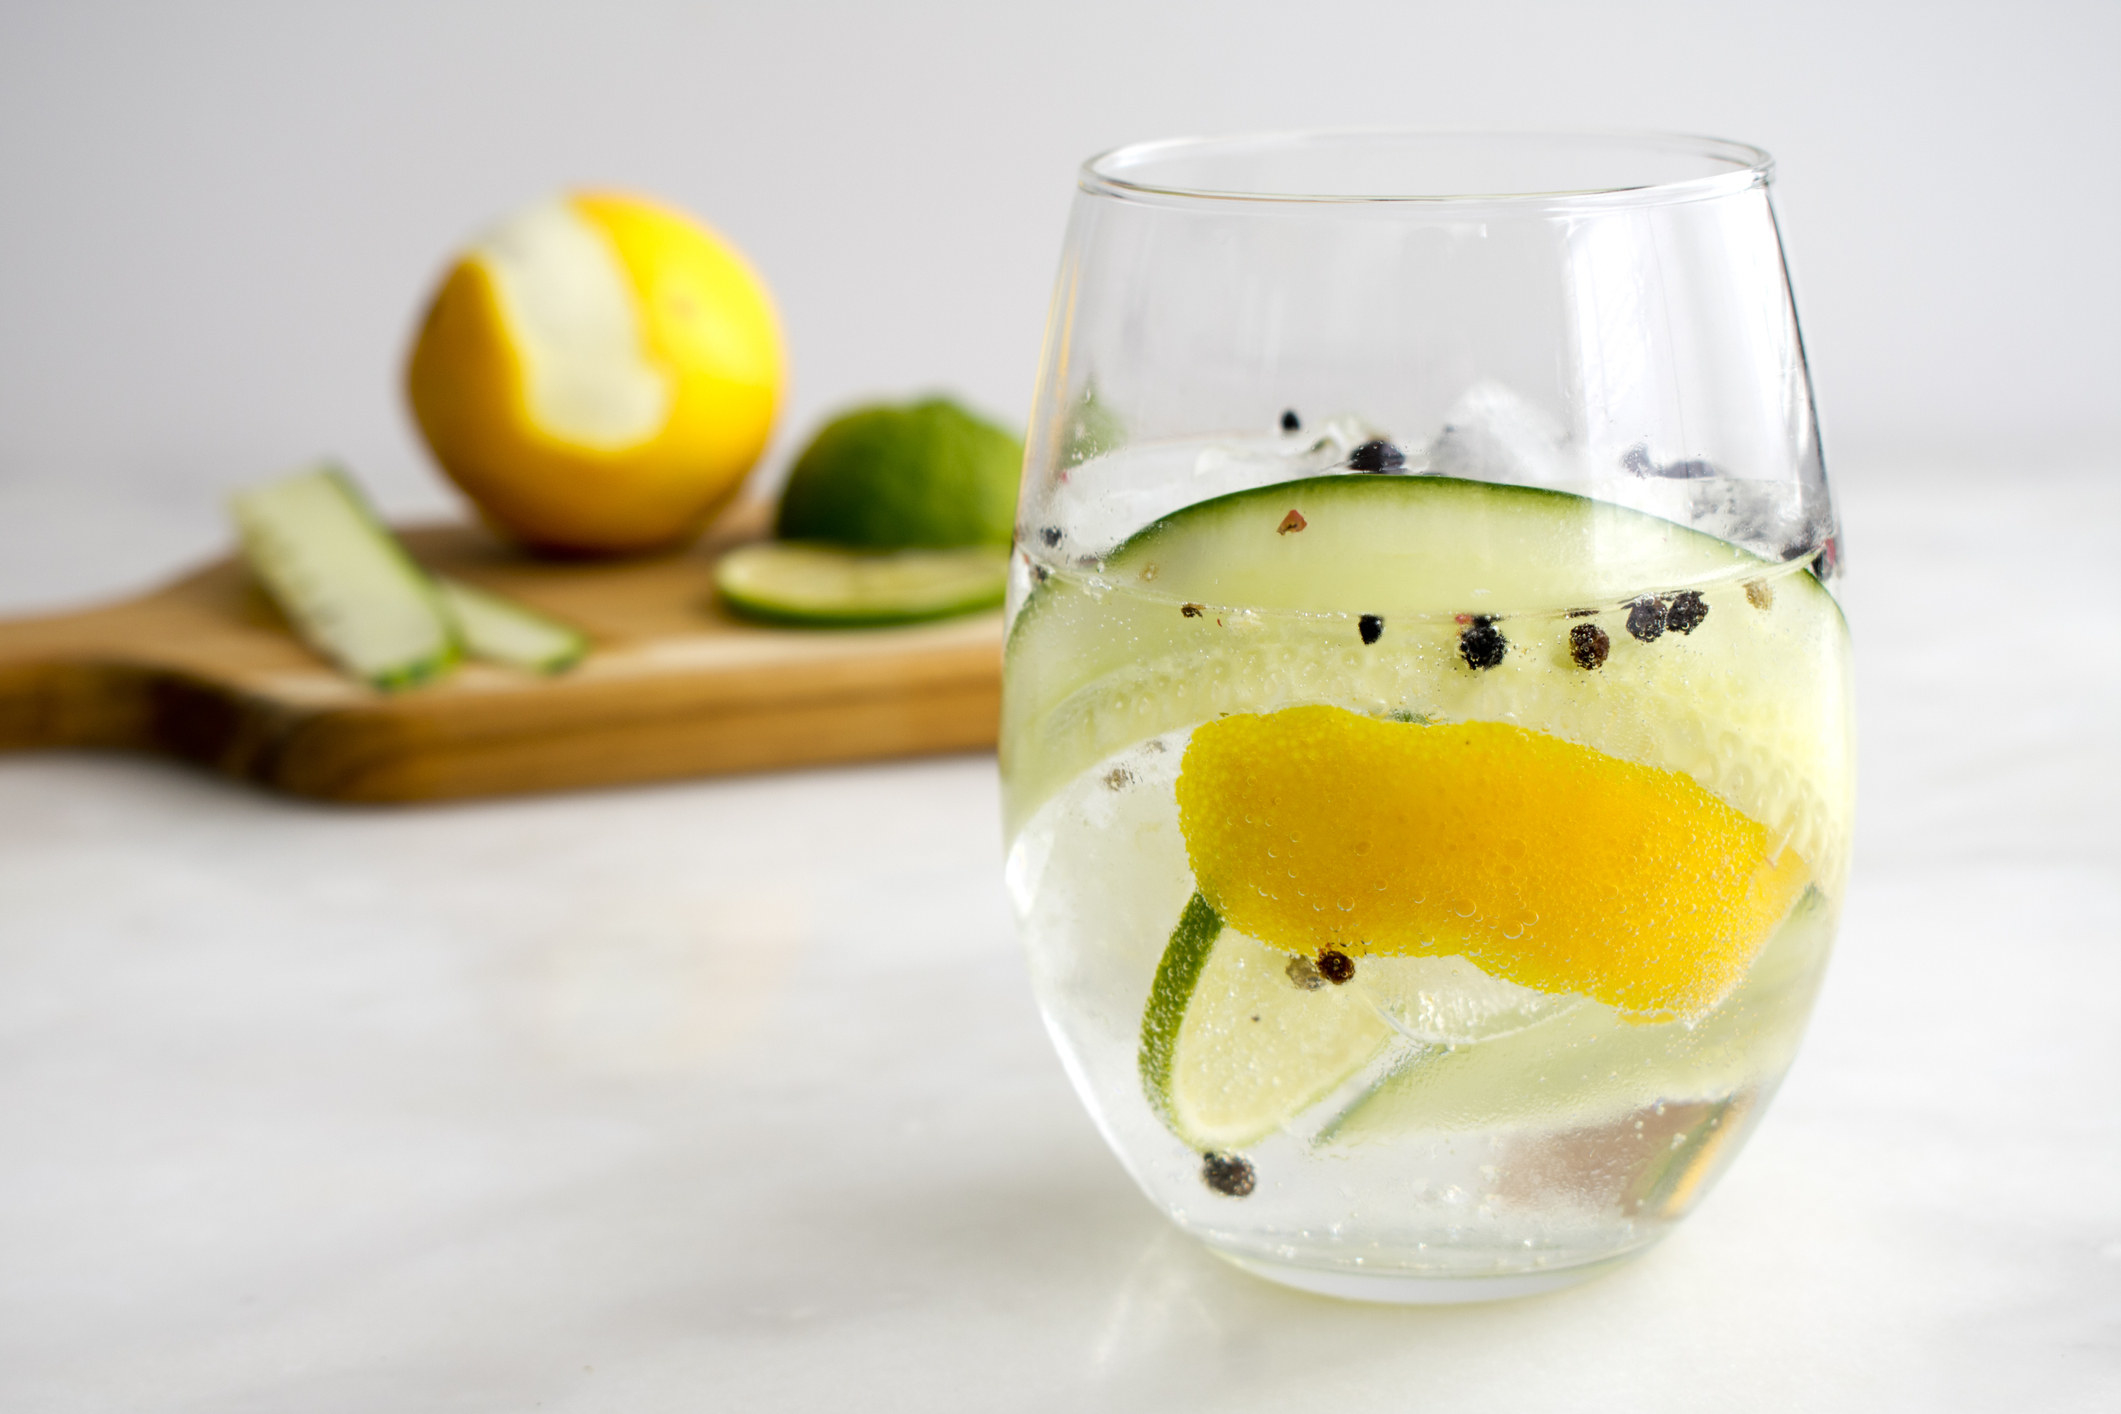 Gin and Tonic with whole black pepper, lemon rind, and cucumber.